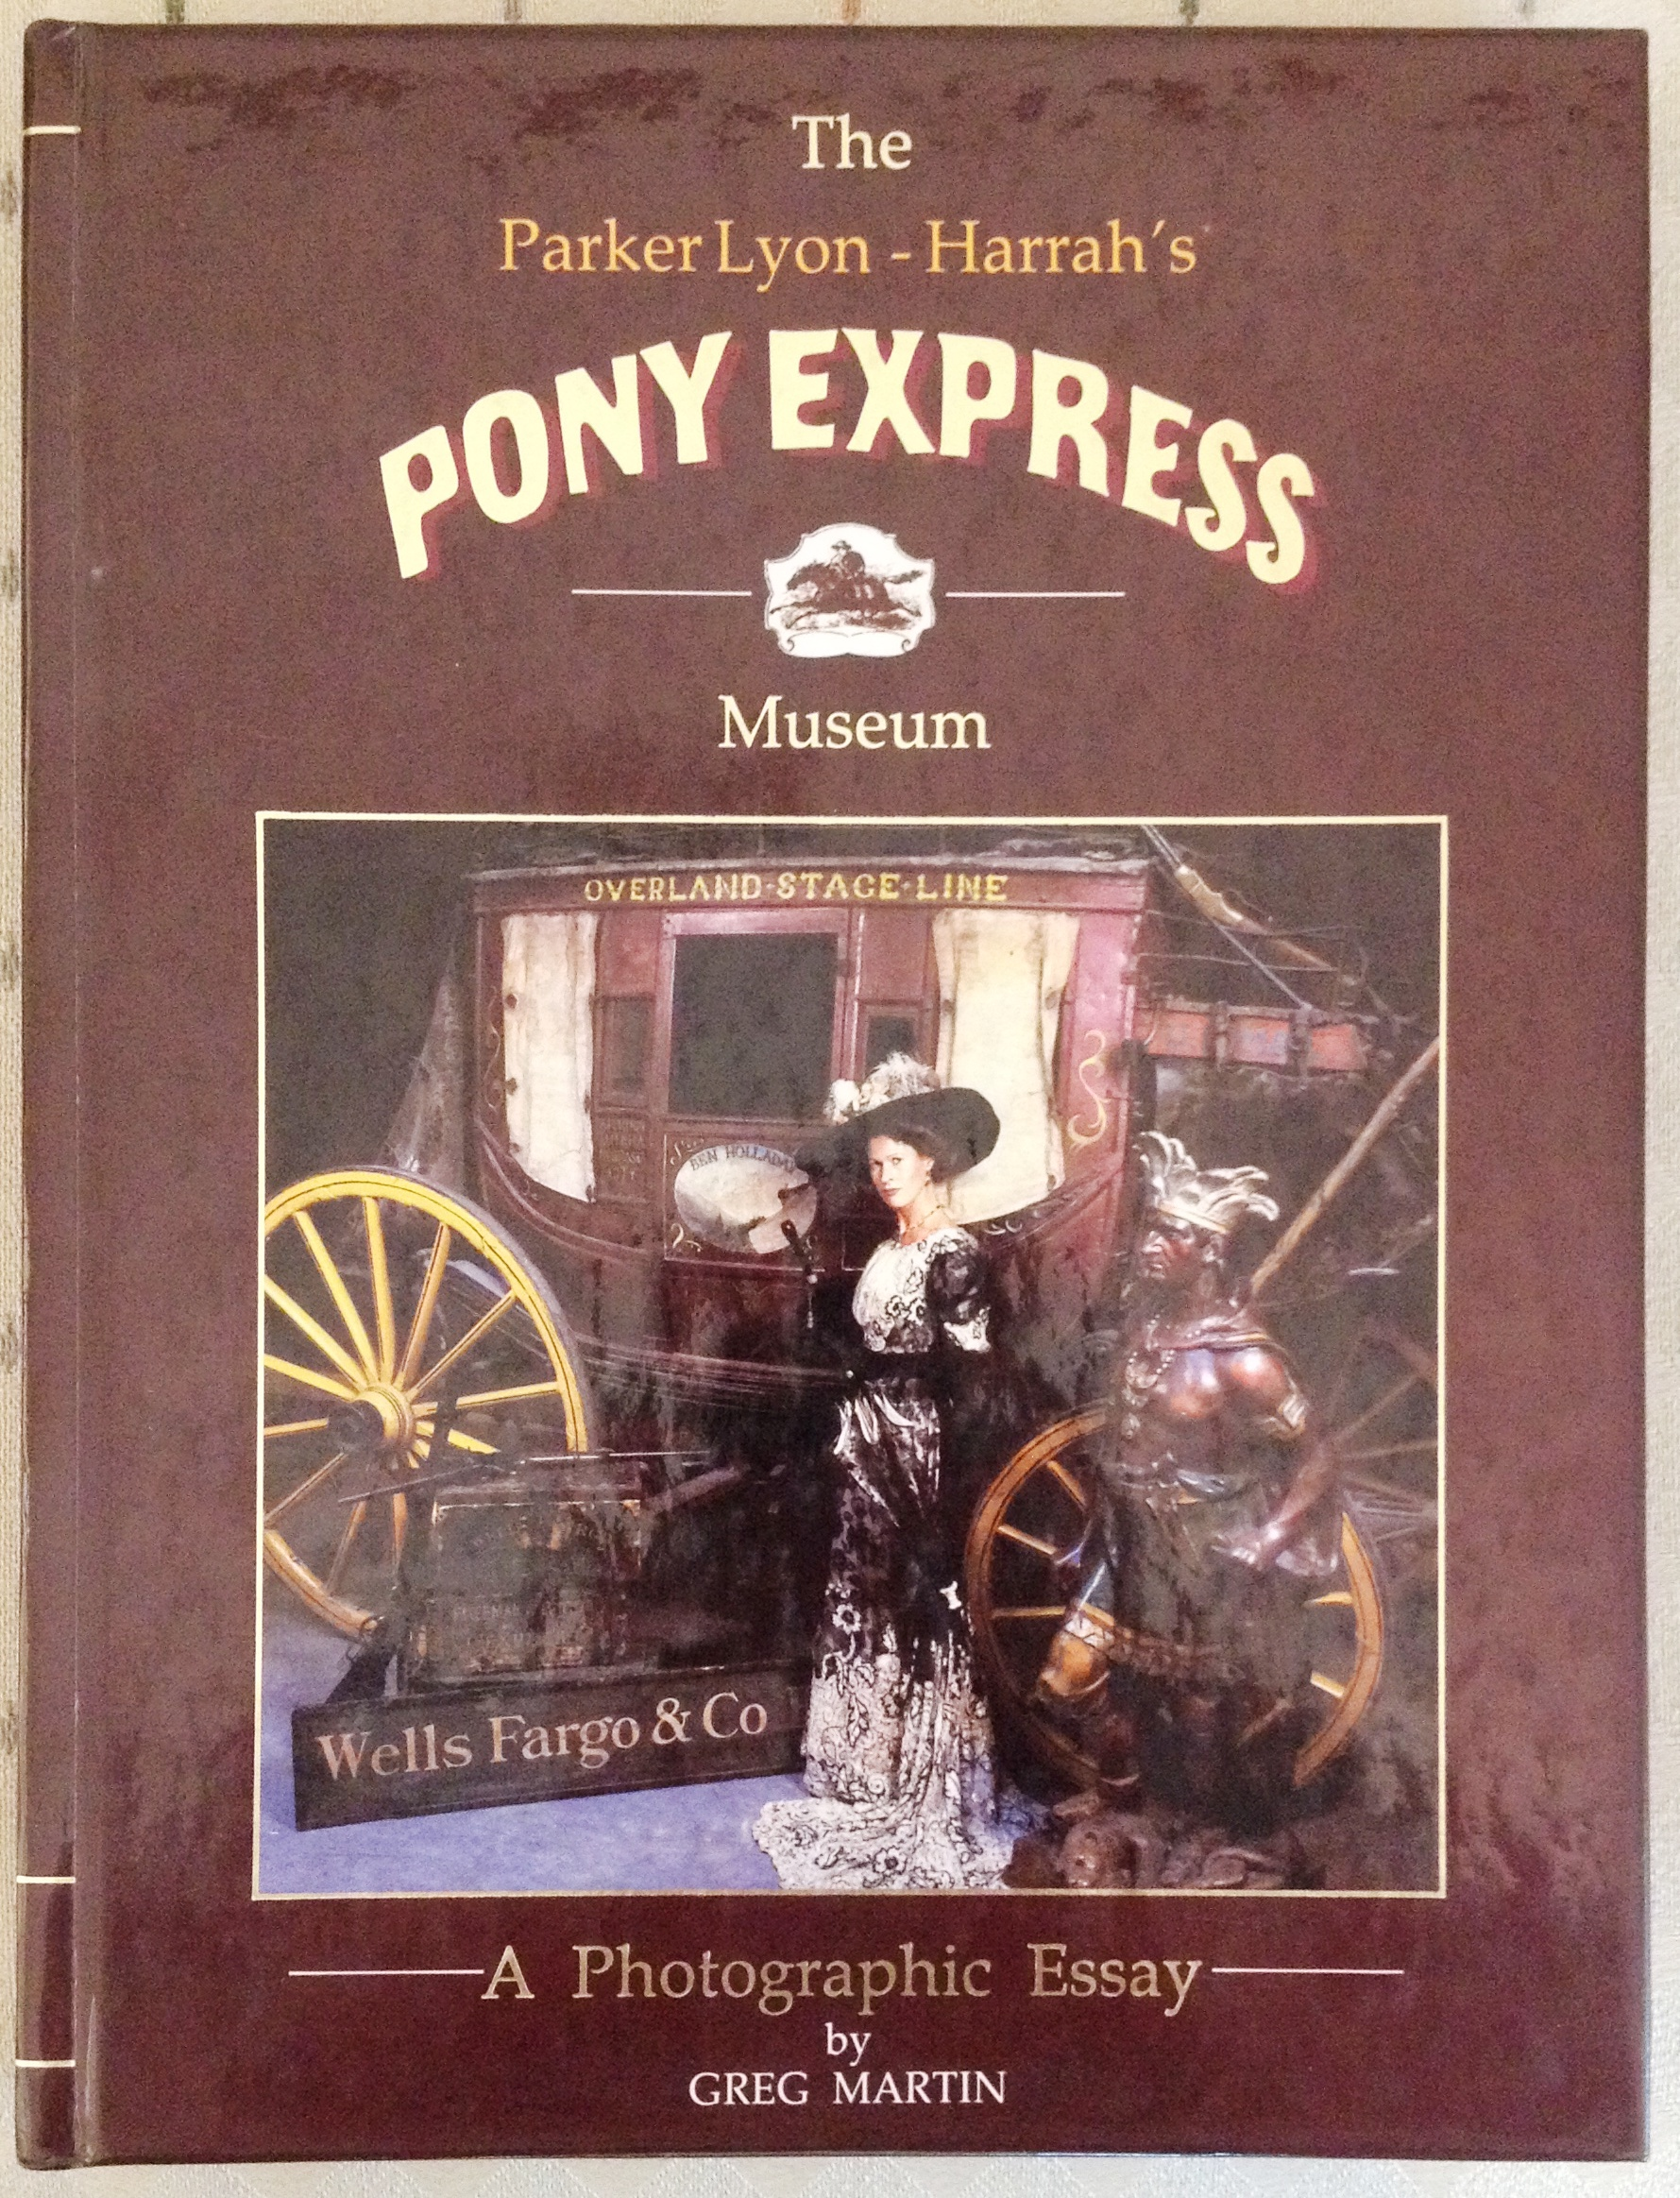 The Parker Lyon book - Pony Express Museum